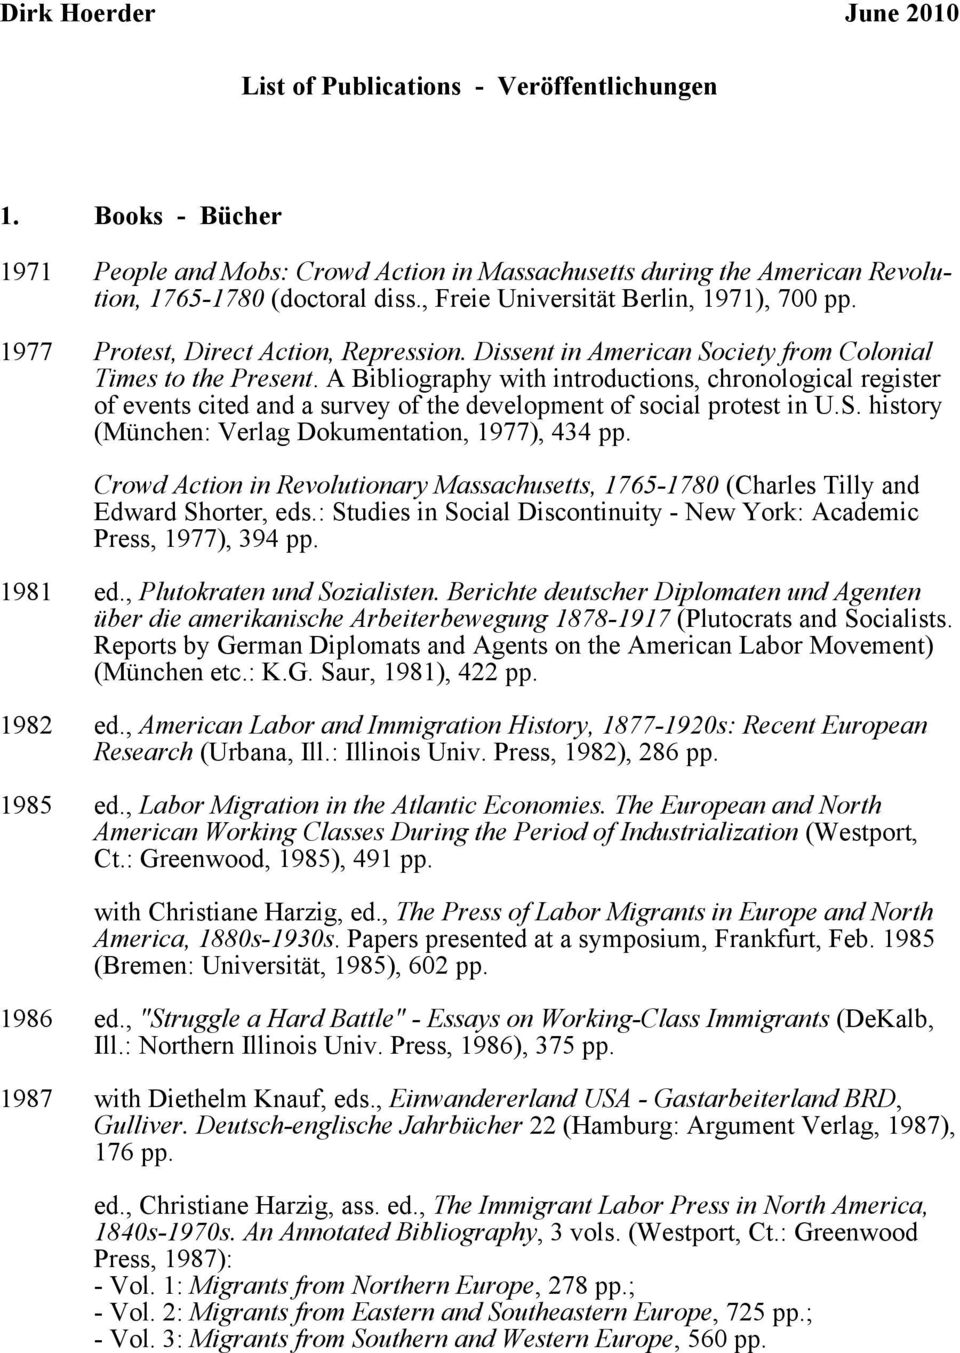 A Bibliography with introductions, chronological register of events cited and a survey of the development of social protest in U.S. history (München: Verlag Dokumentation, 1977), 434 pp.